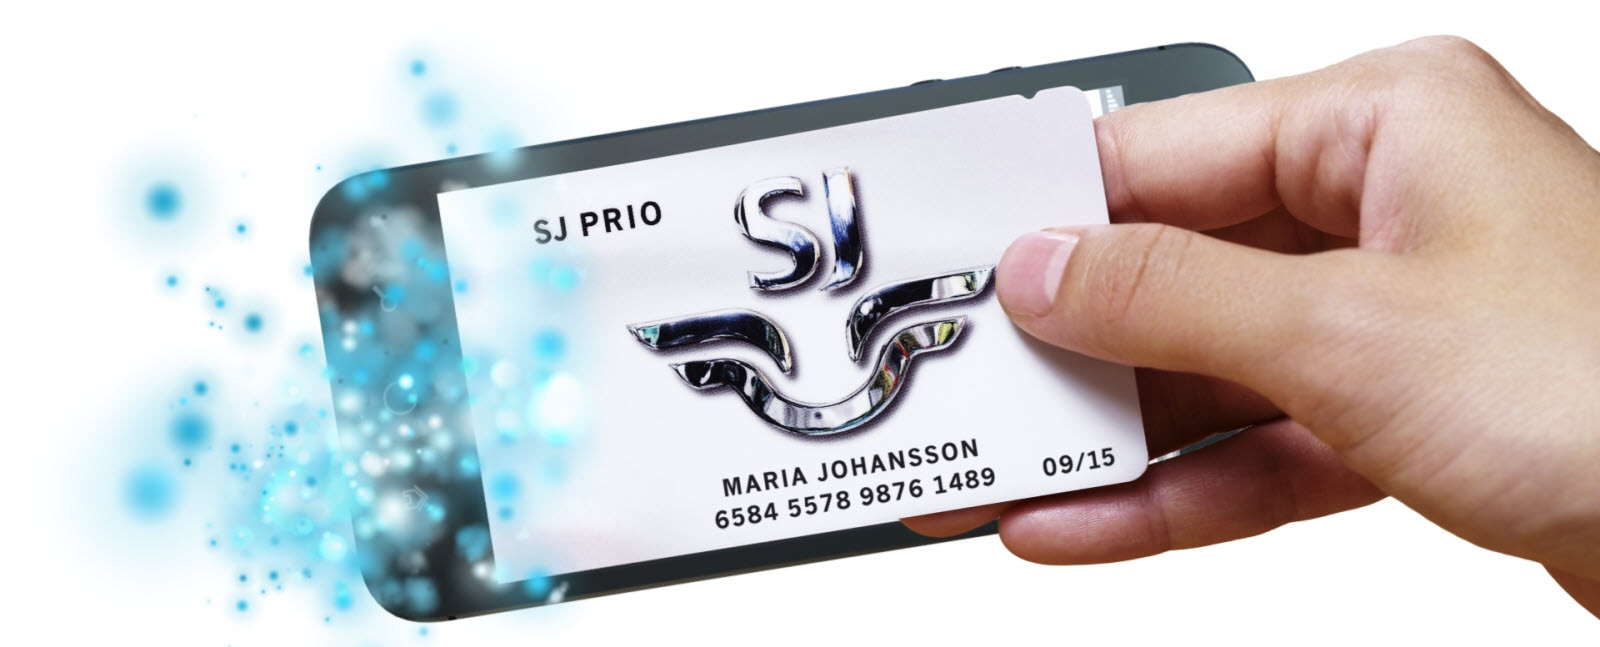 SJ Prio logo in Iphone